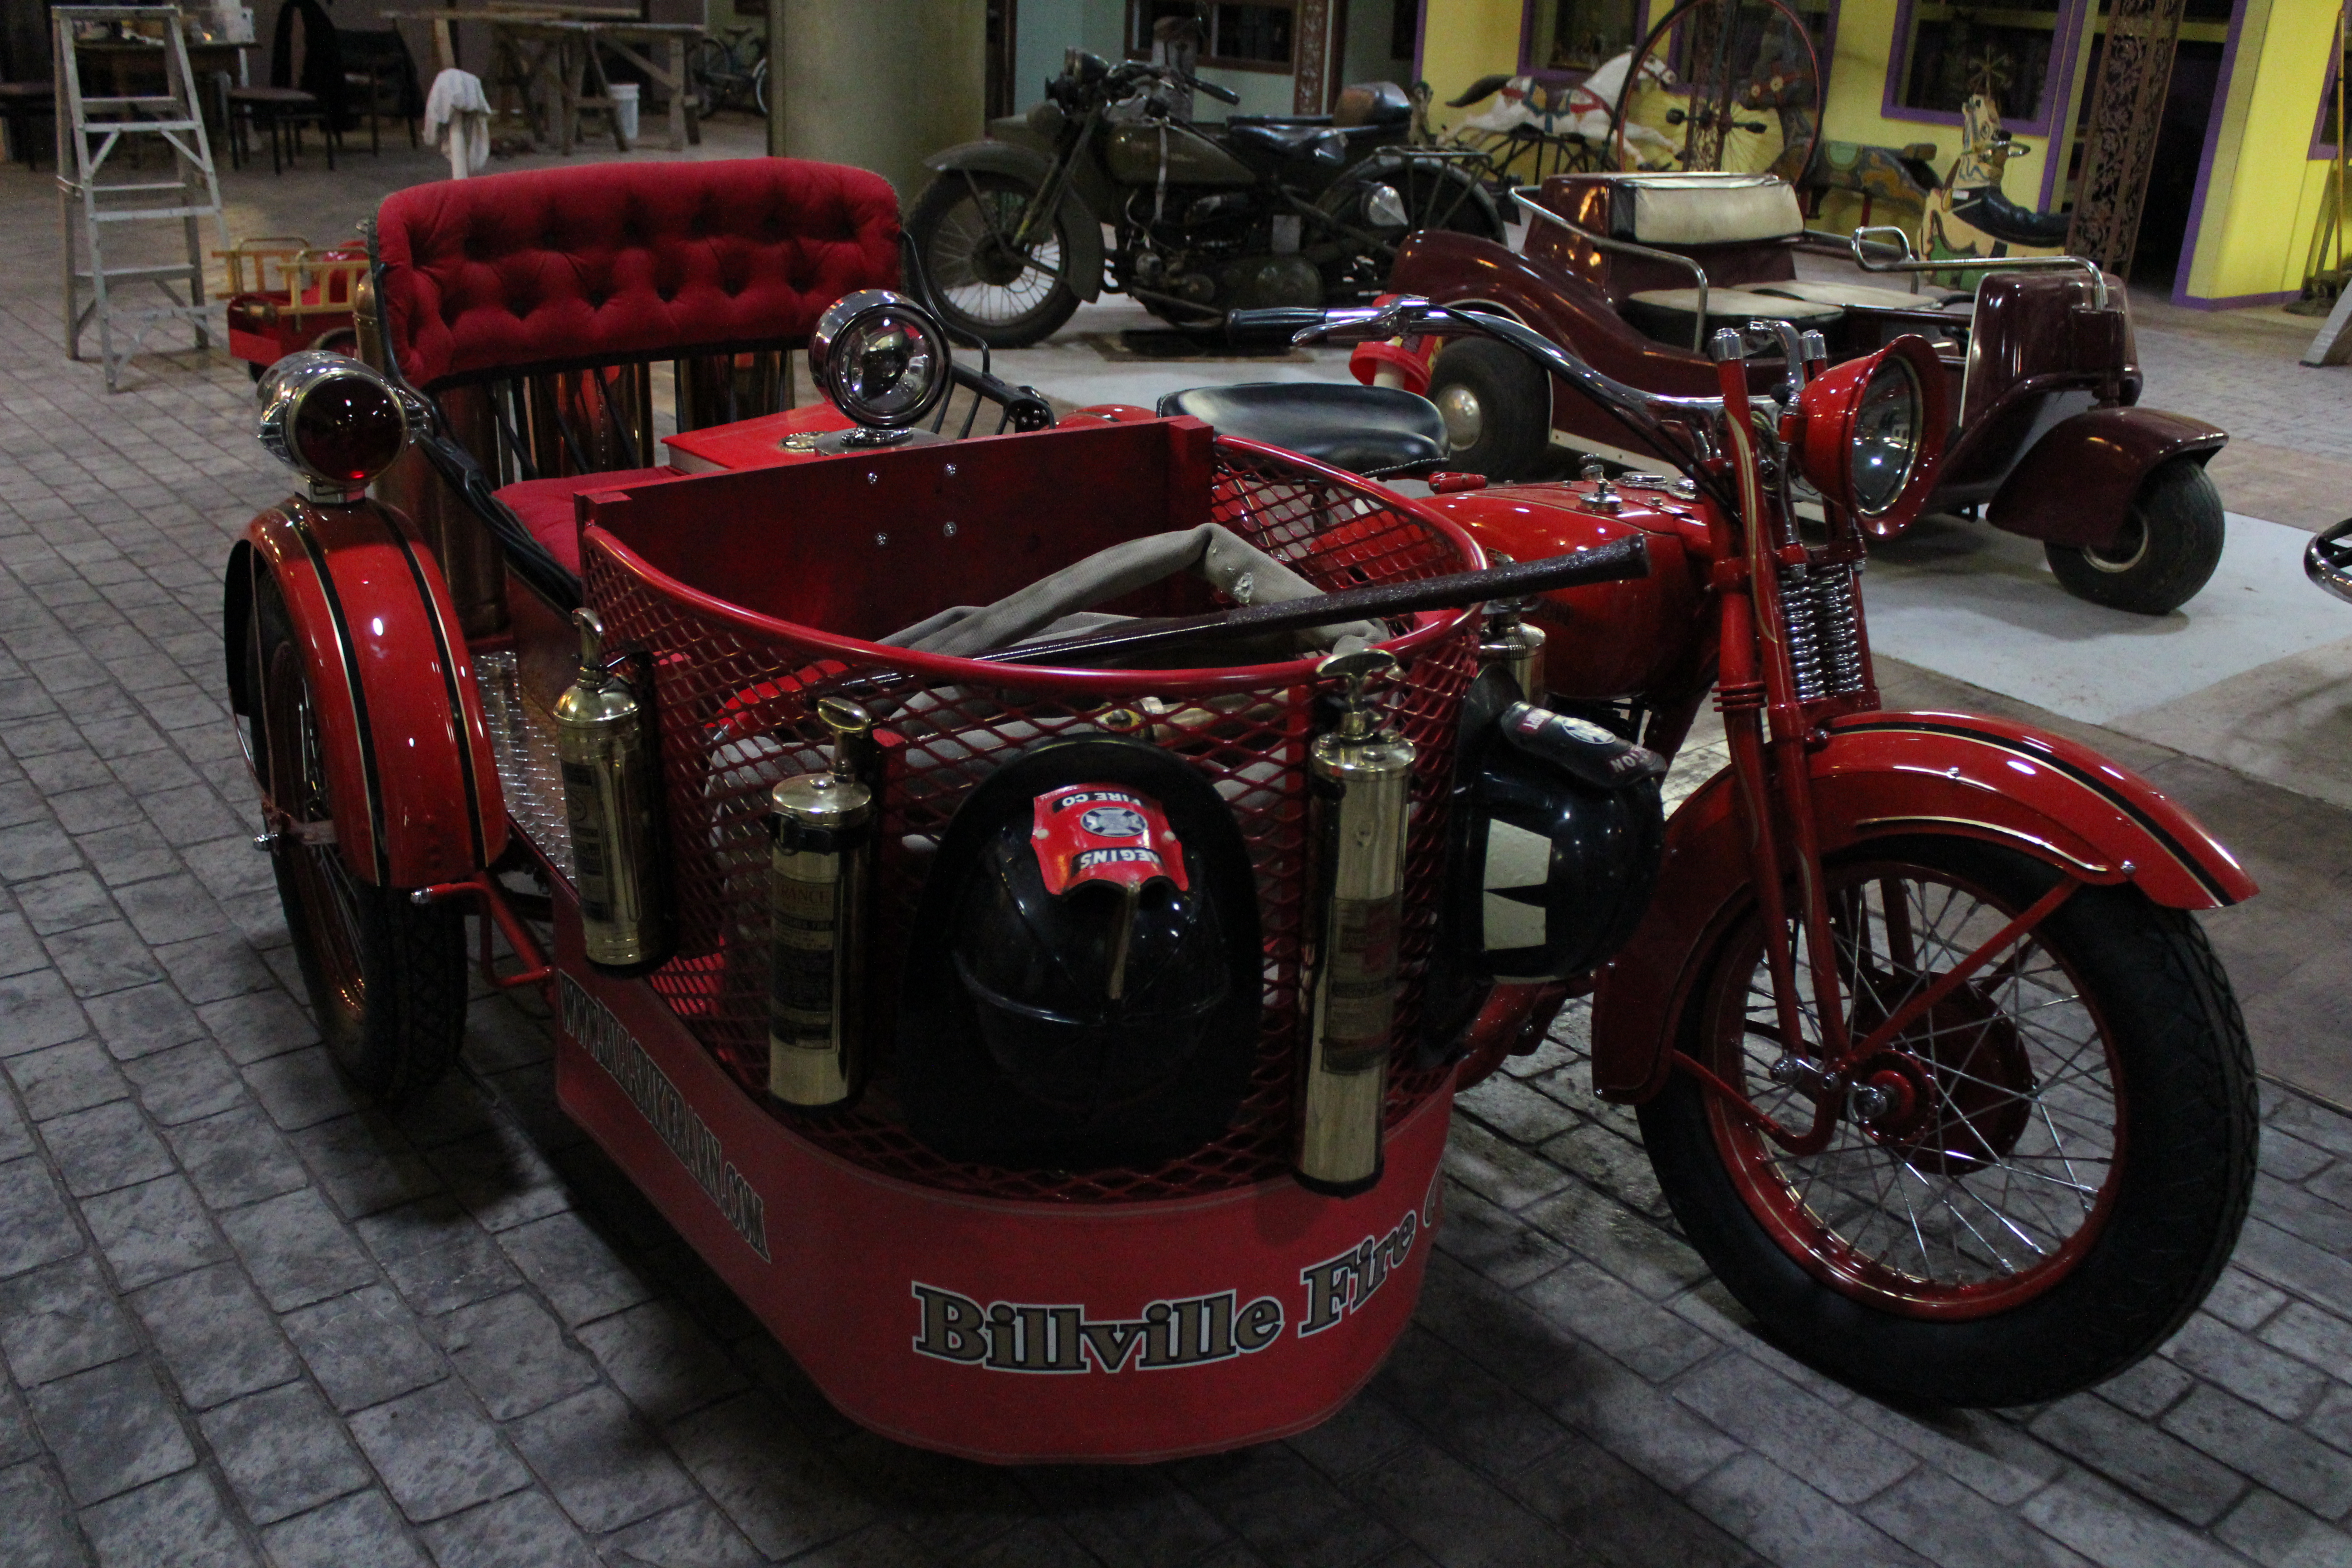 Motorcycle Mania- Bill's Old Bike Barn houses one man's ...